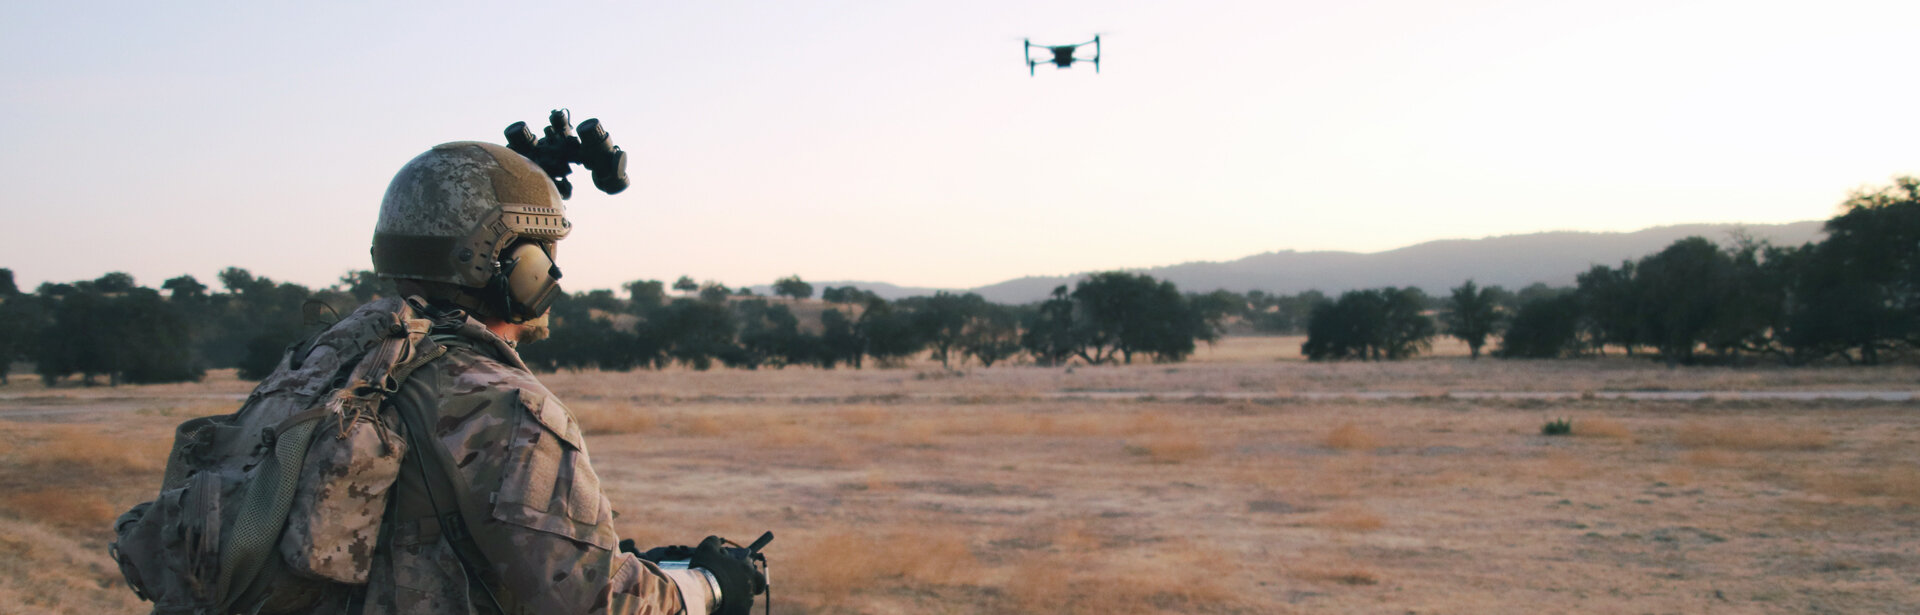 ionm440_tactical_quadcopter.jpg